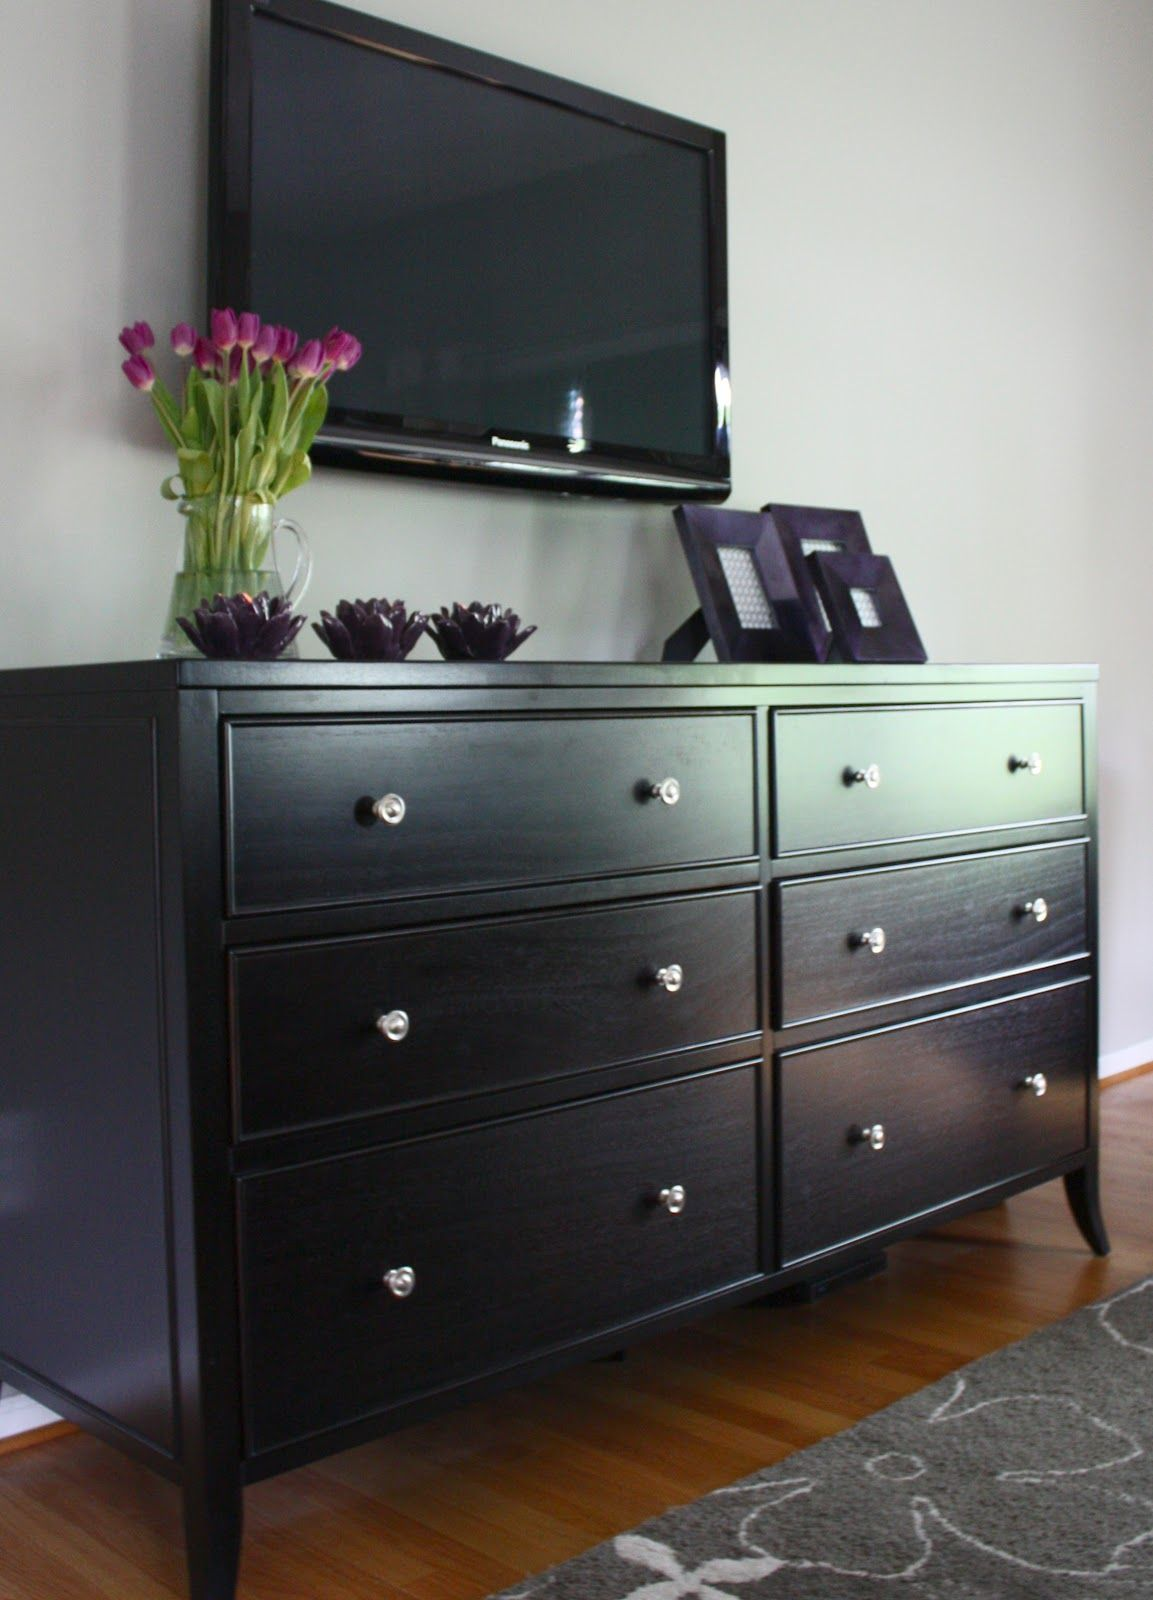 I Have Black Furniture This Is What Am Going To Do My Dresser Remove The Mirror And Out Television On Wall